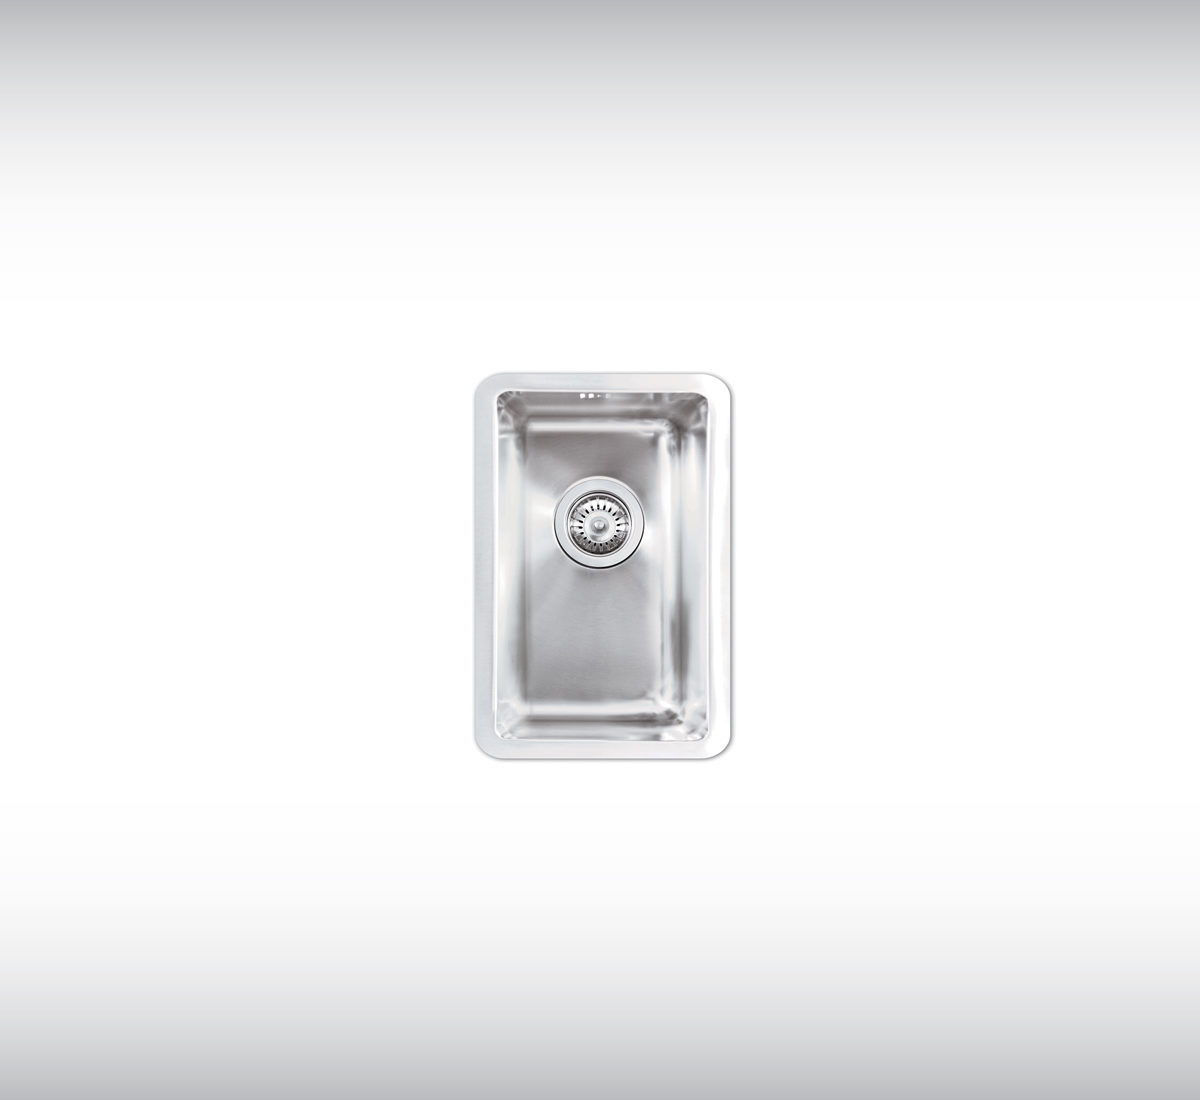 Stainless Steel Sink GINO-244